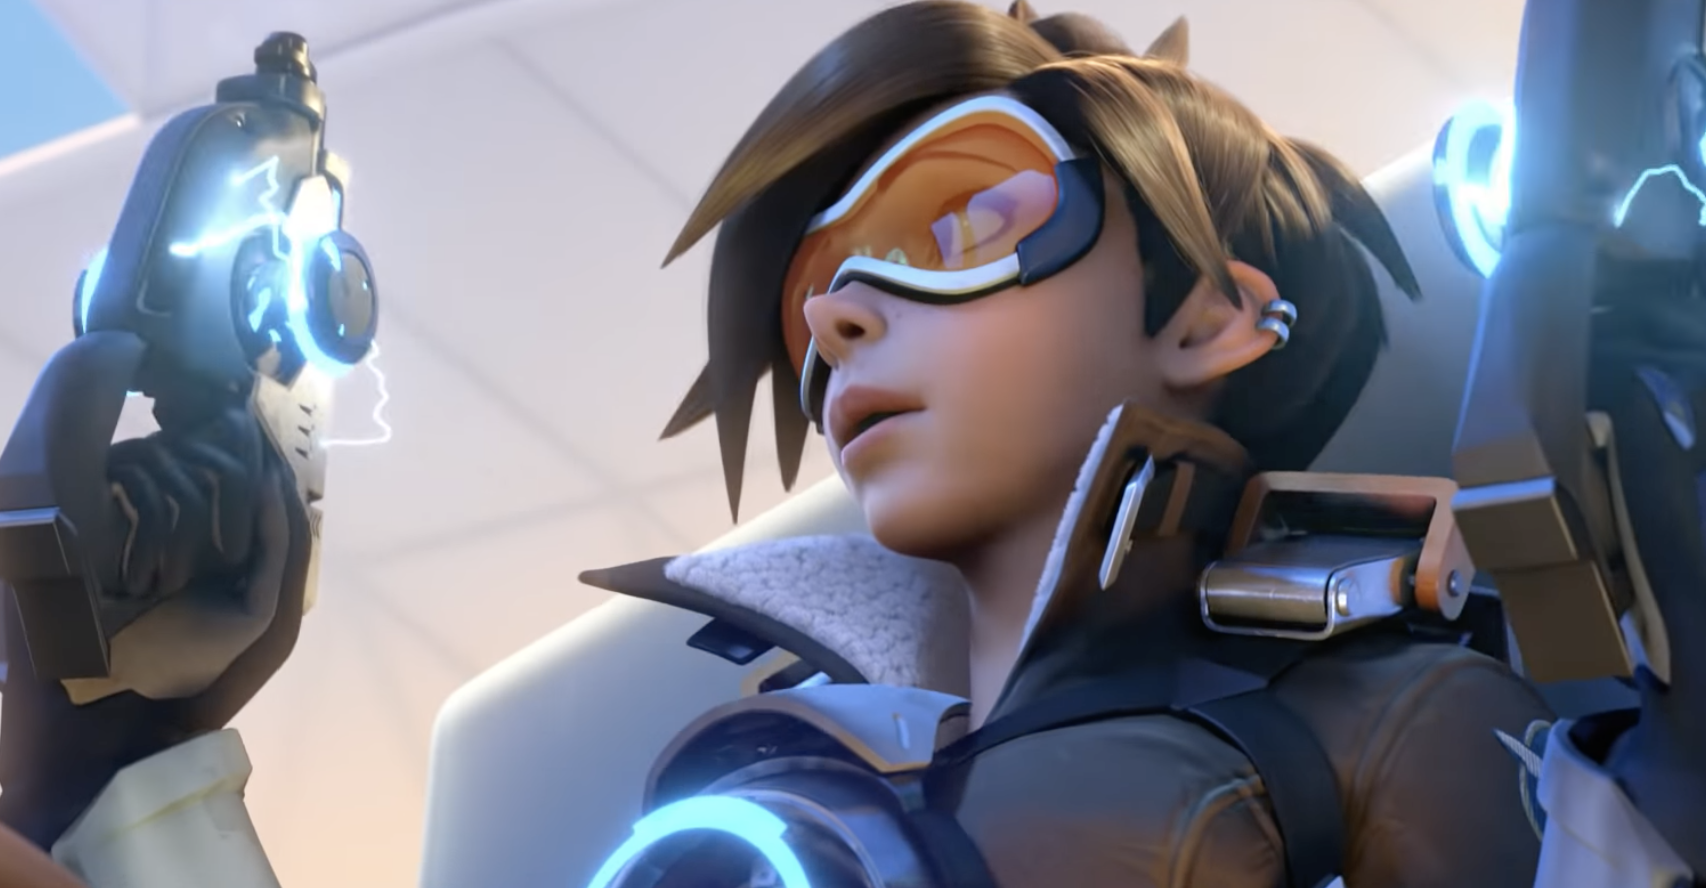 More ways for your friends to play on the same team in Overwatch.